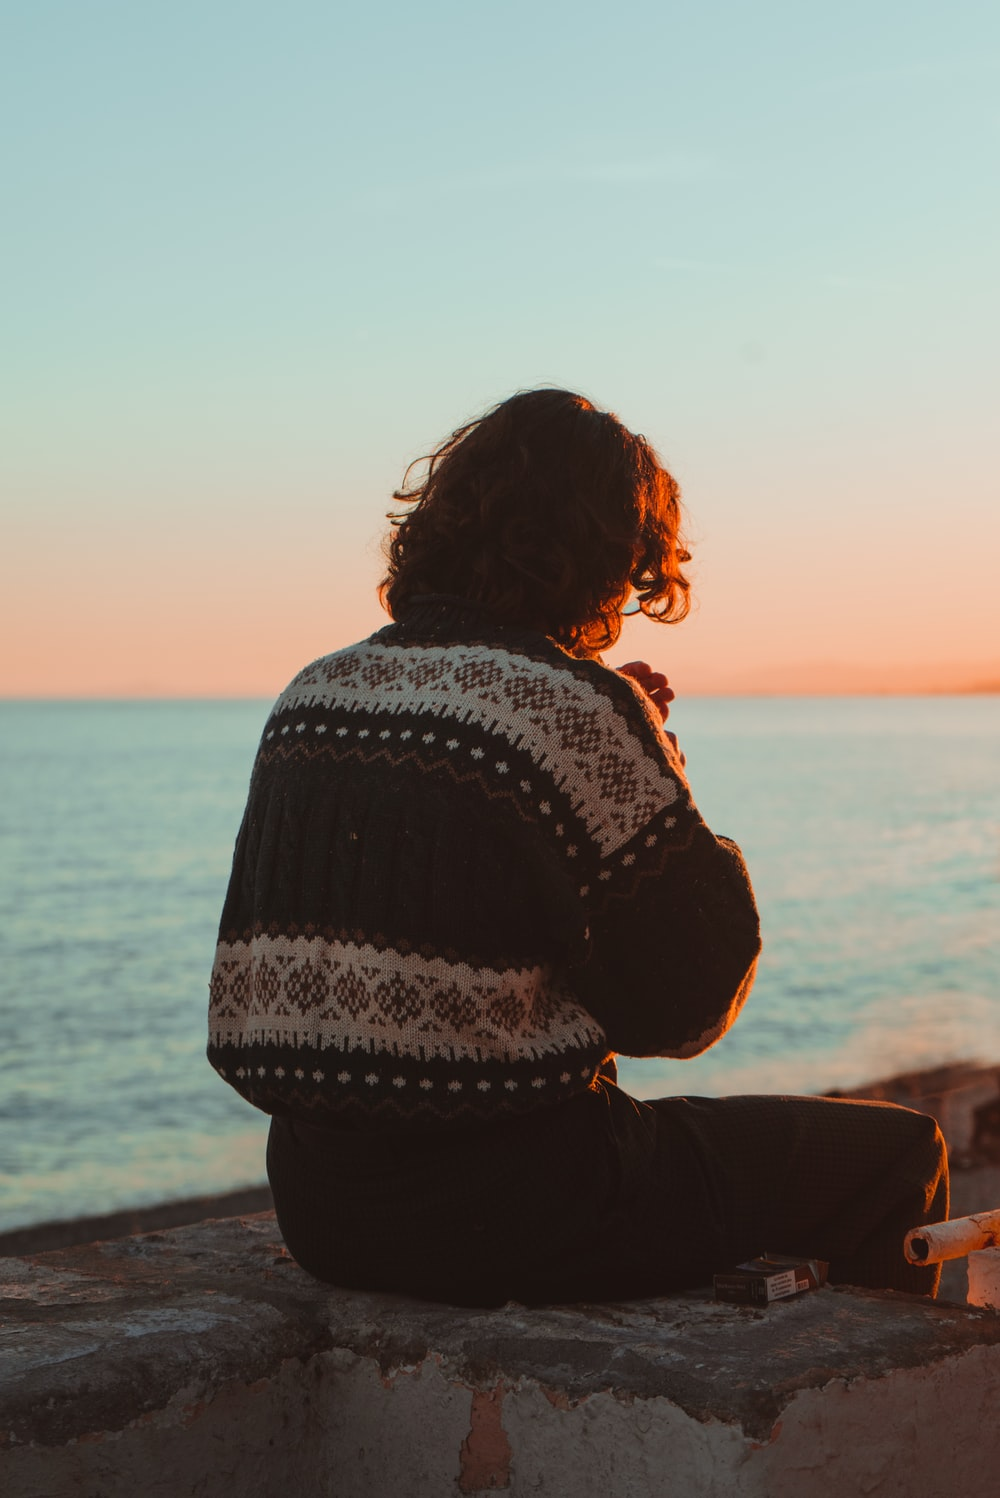 person in black and white sweater sitting on beach shore during sunset